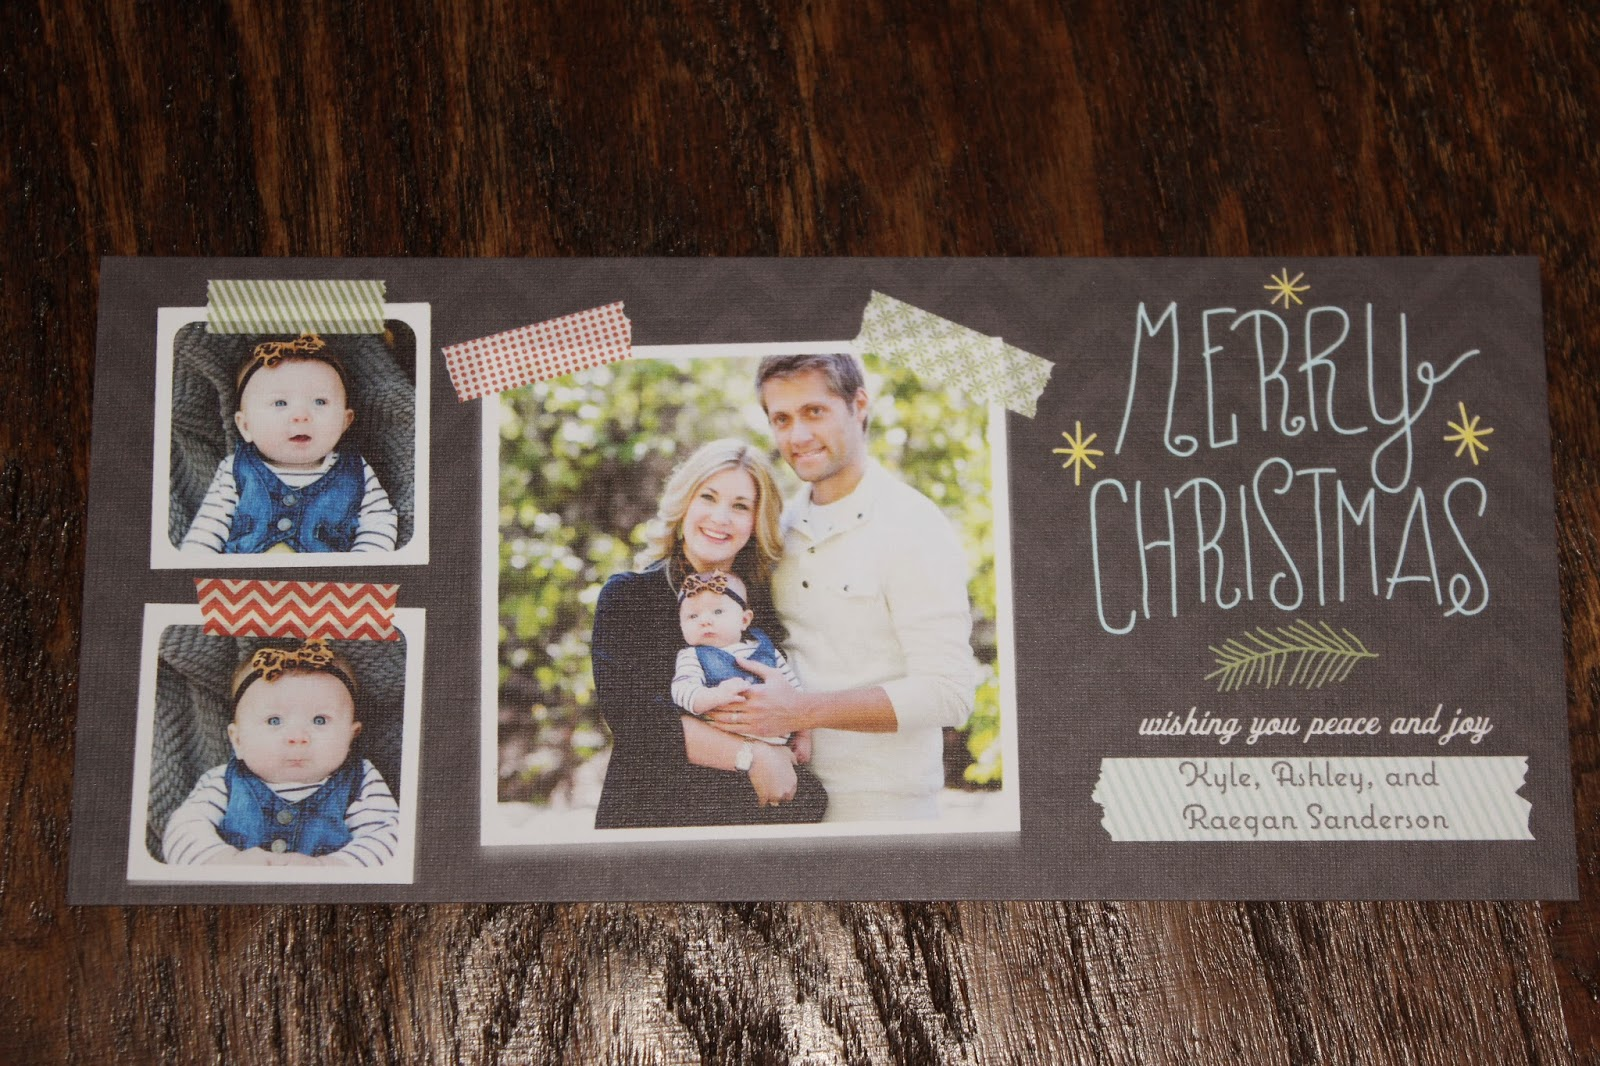 Christmas Card Link Up - The Mrs. & Co.